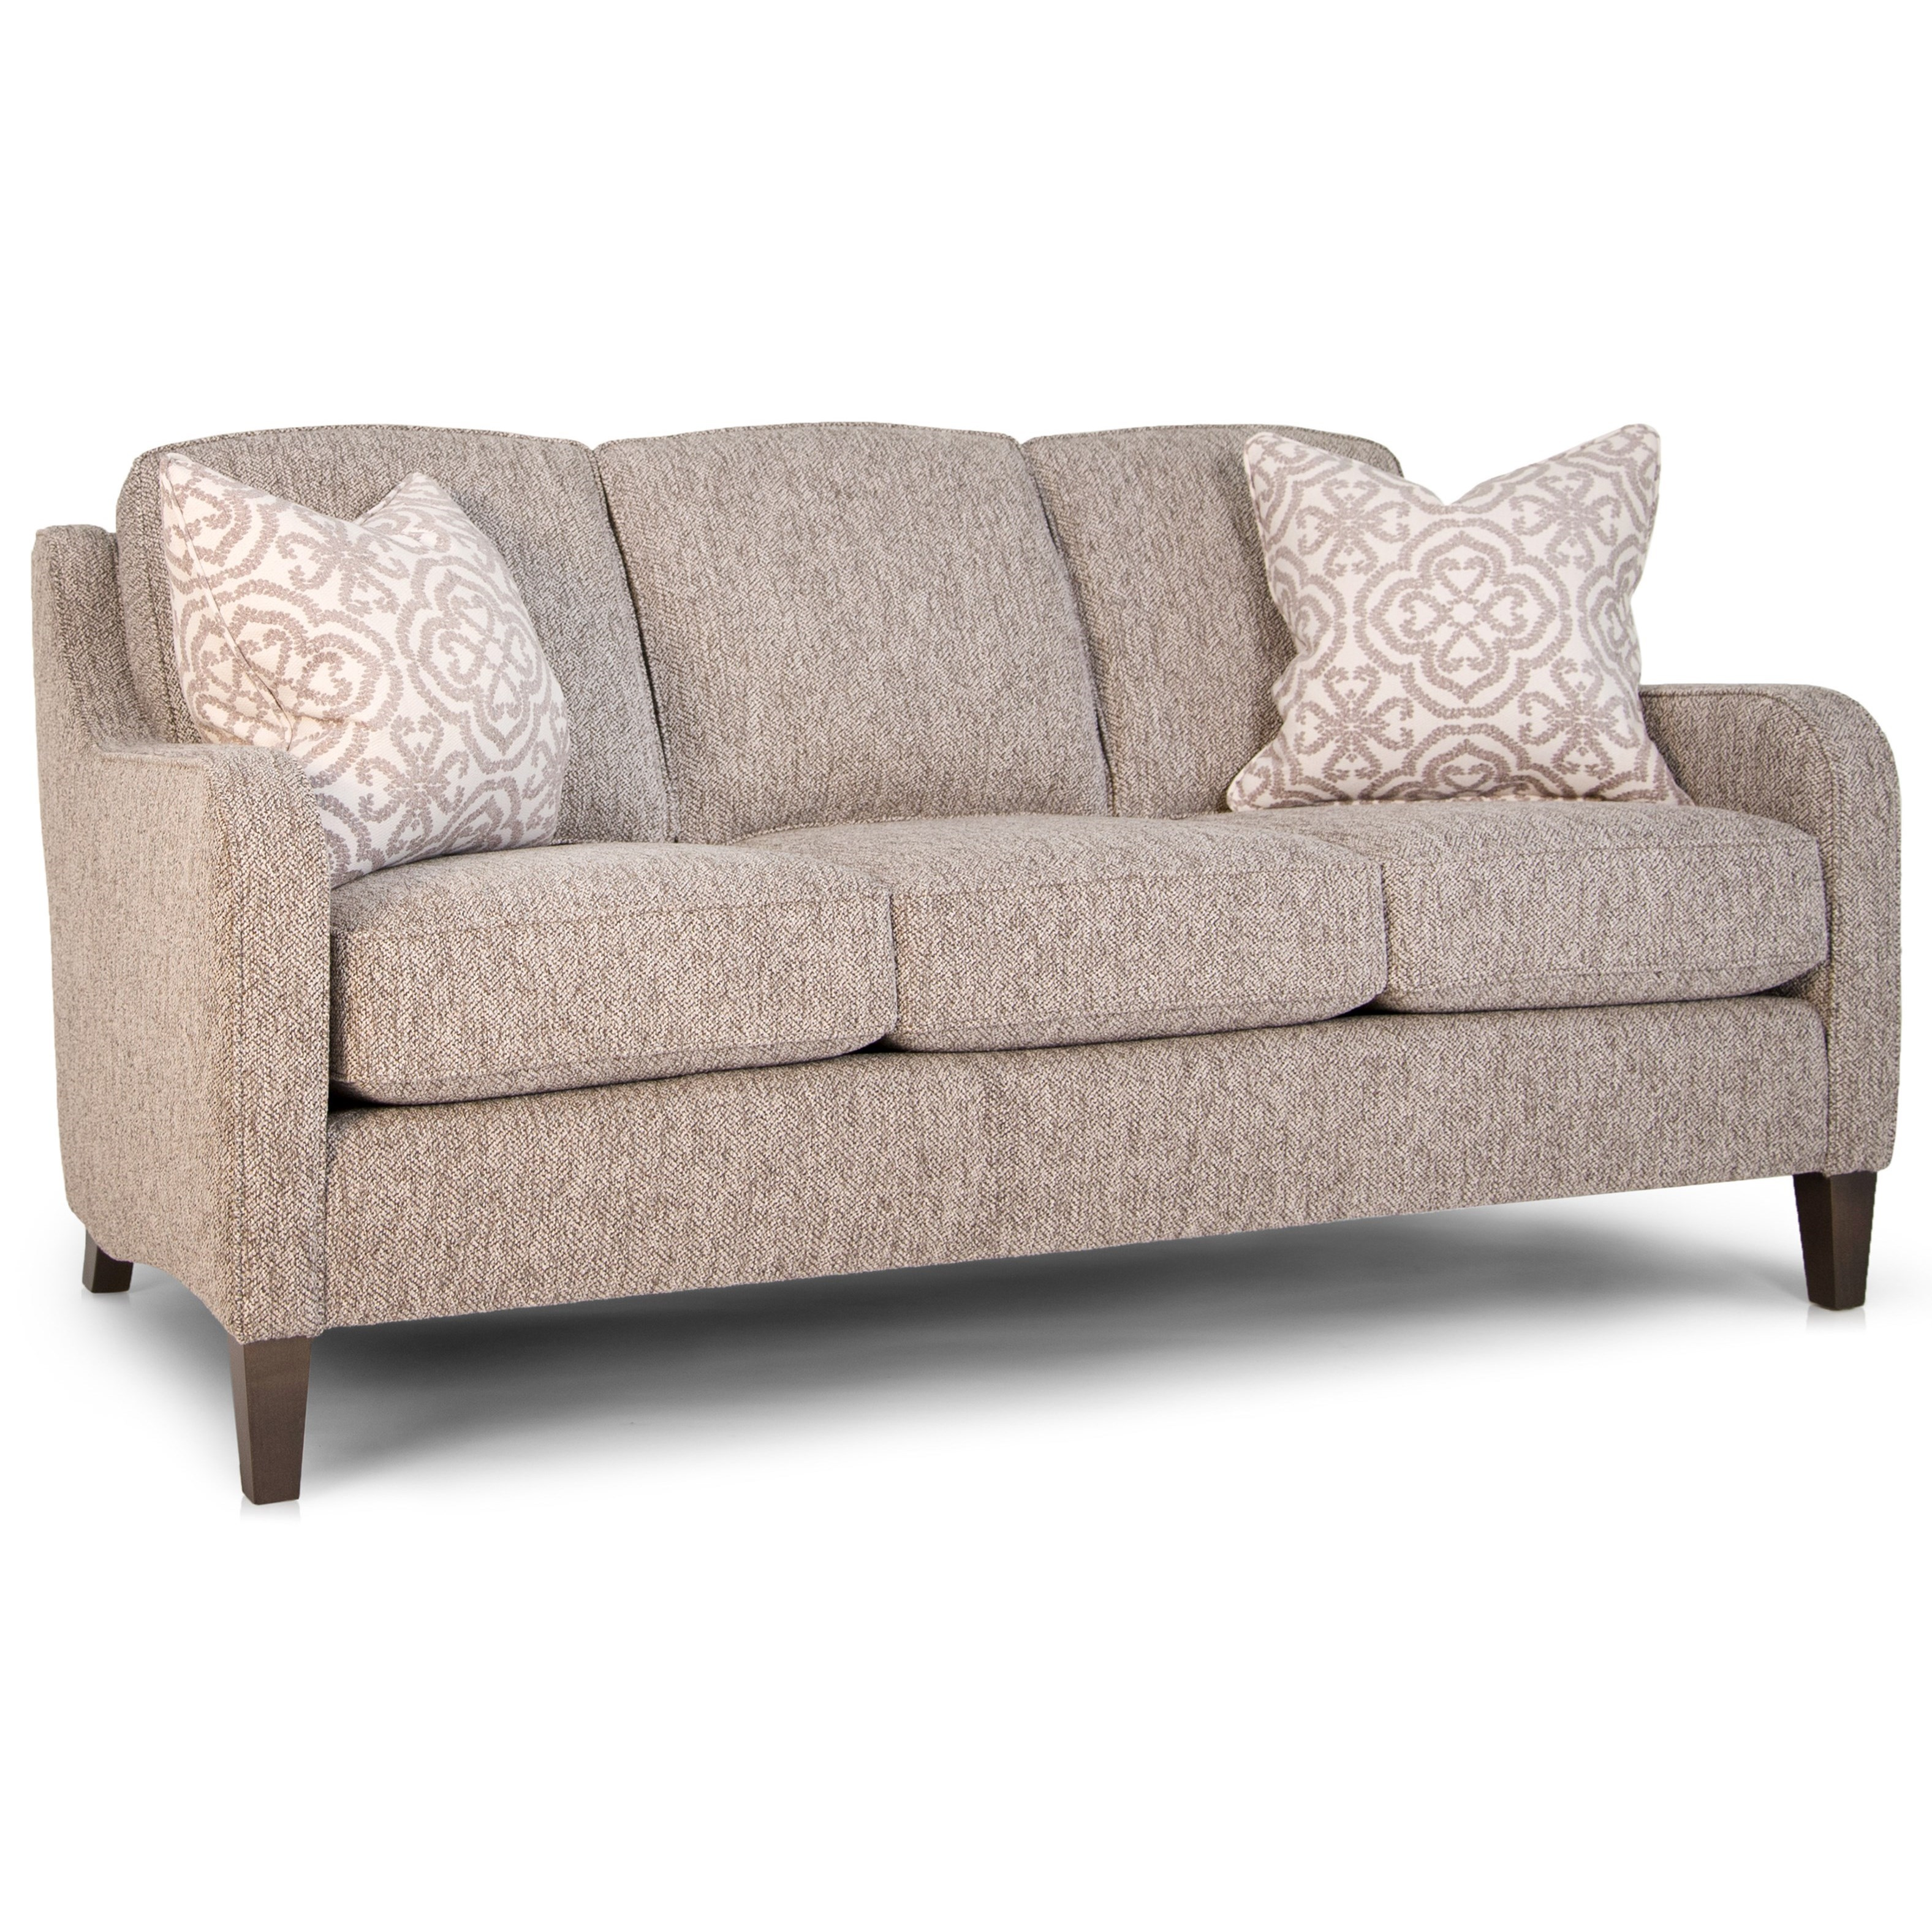 252 Mid Size Sofa by Smith Brothers at Sprintz Furniture